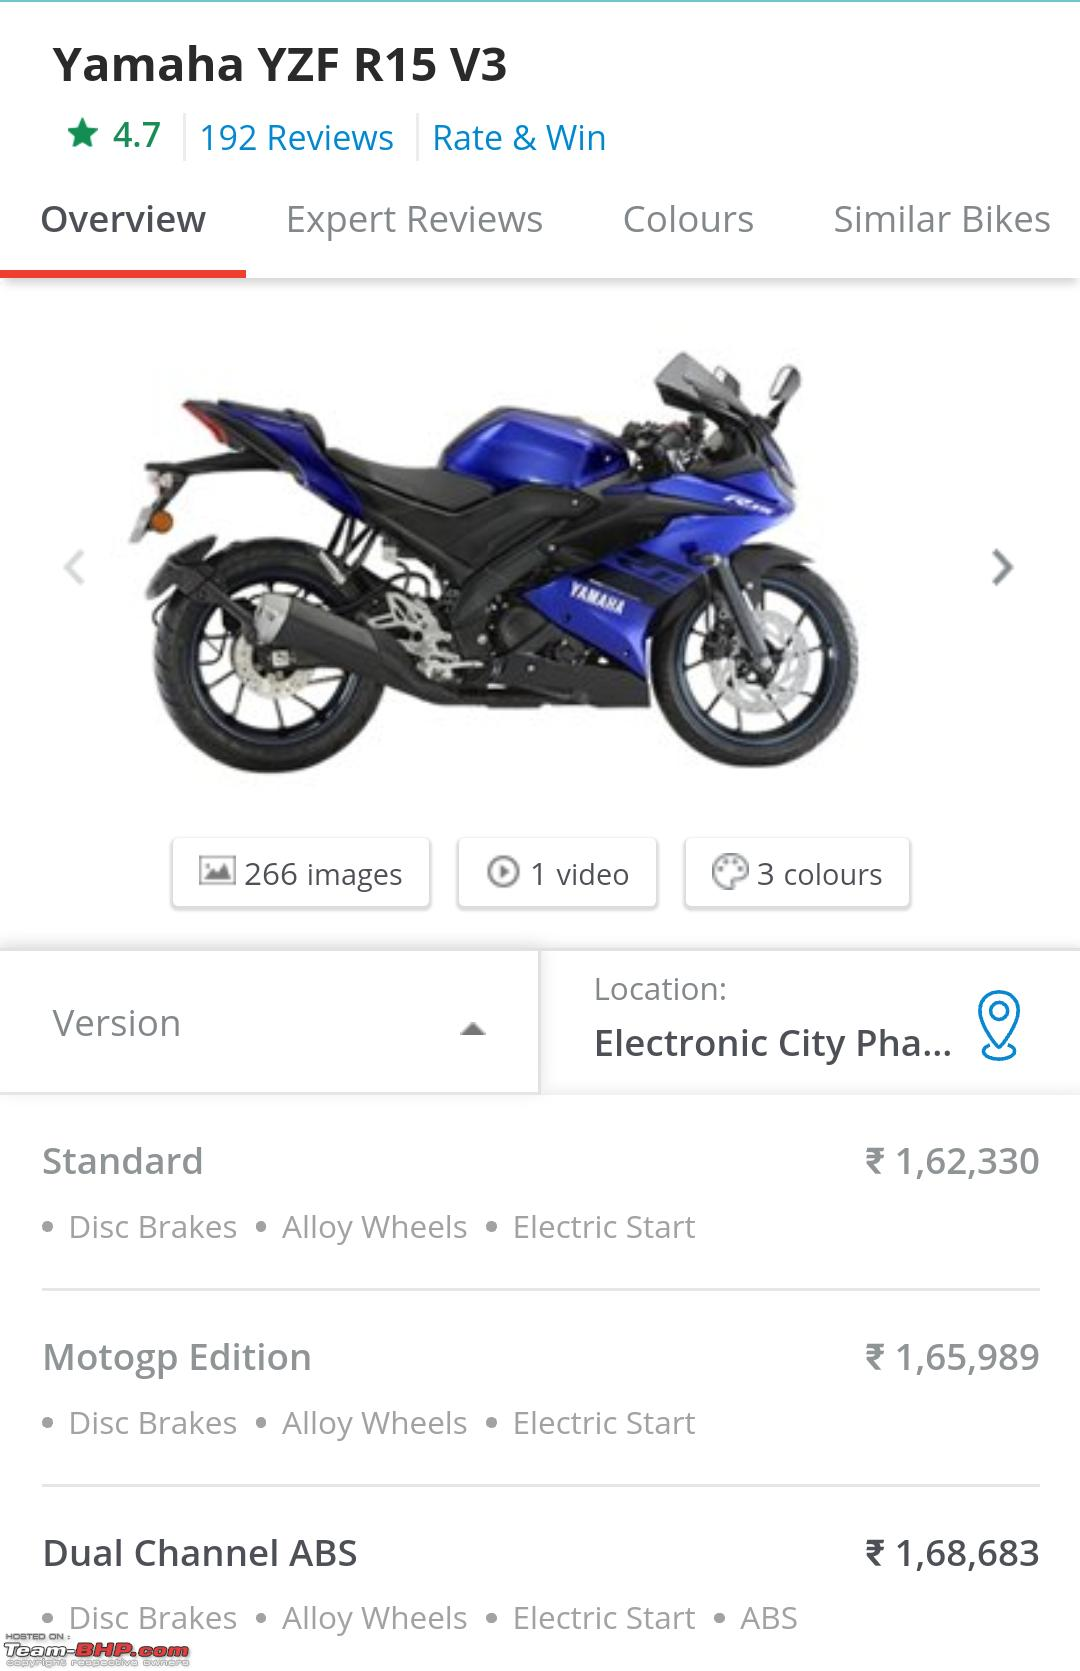 Yamaha YZF-R15 V3 0 with dual-channel ABS launched at Rs